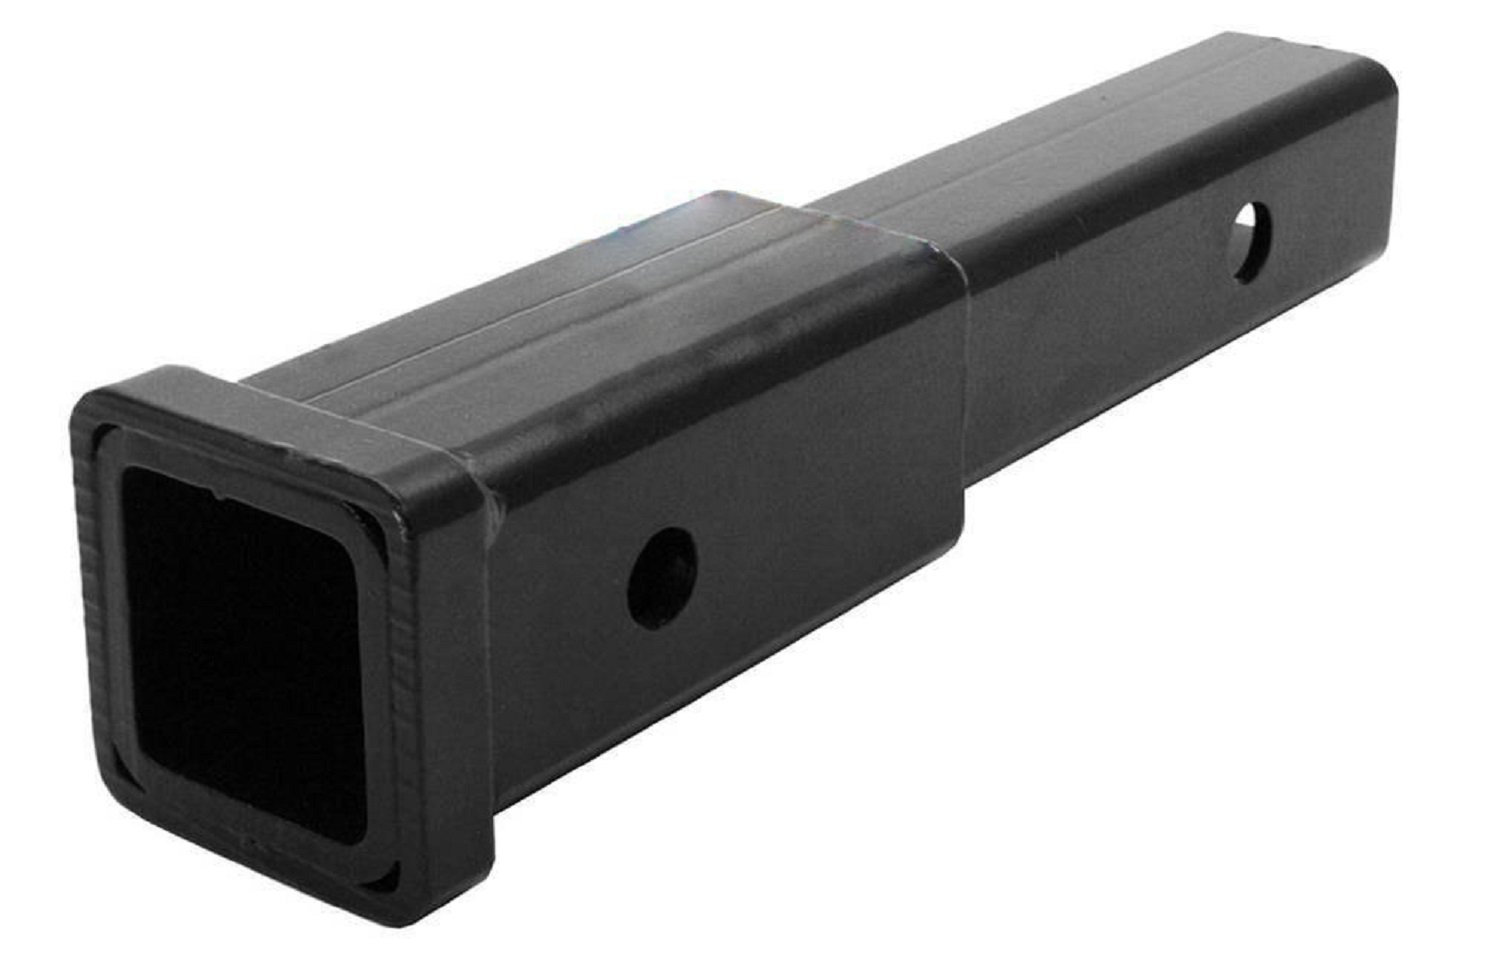 Cal Hawk Tools CZHBME08 8'' Receiver Extension